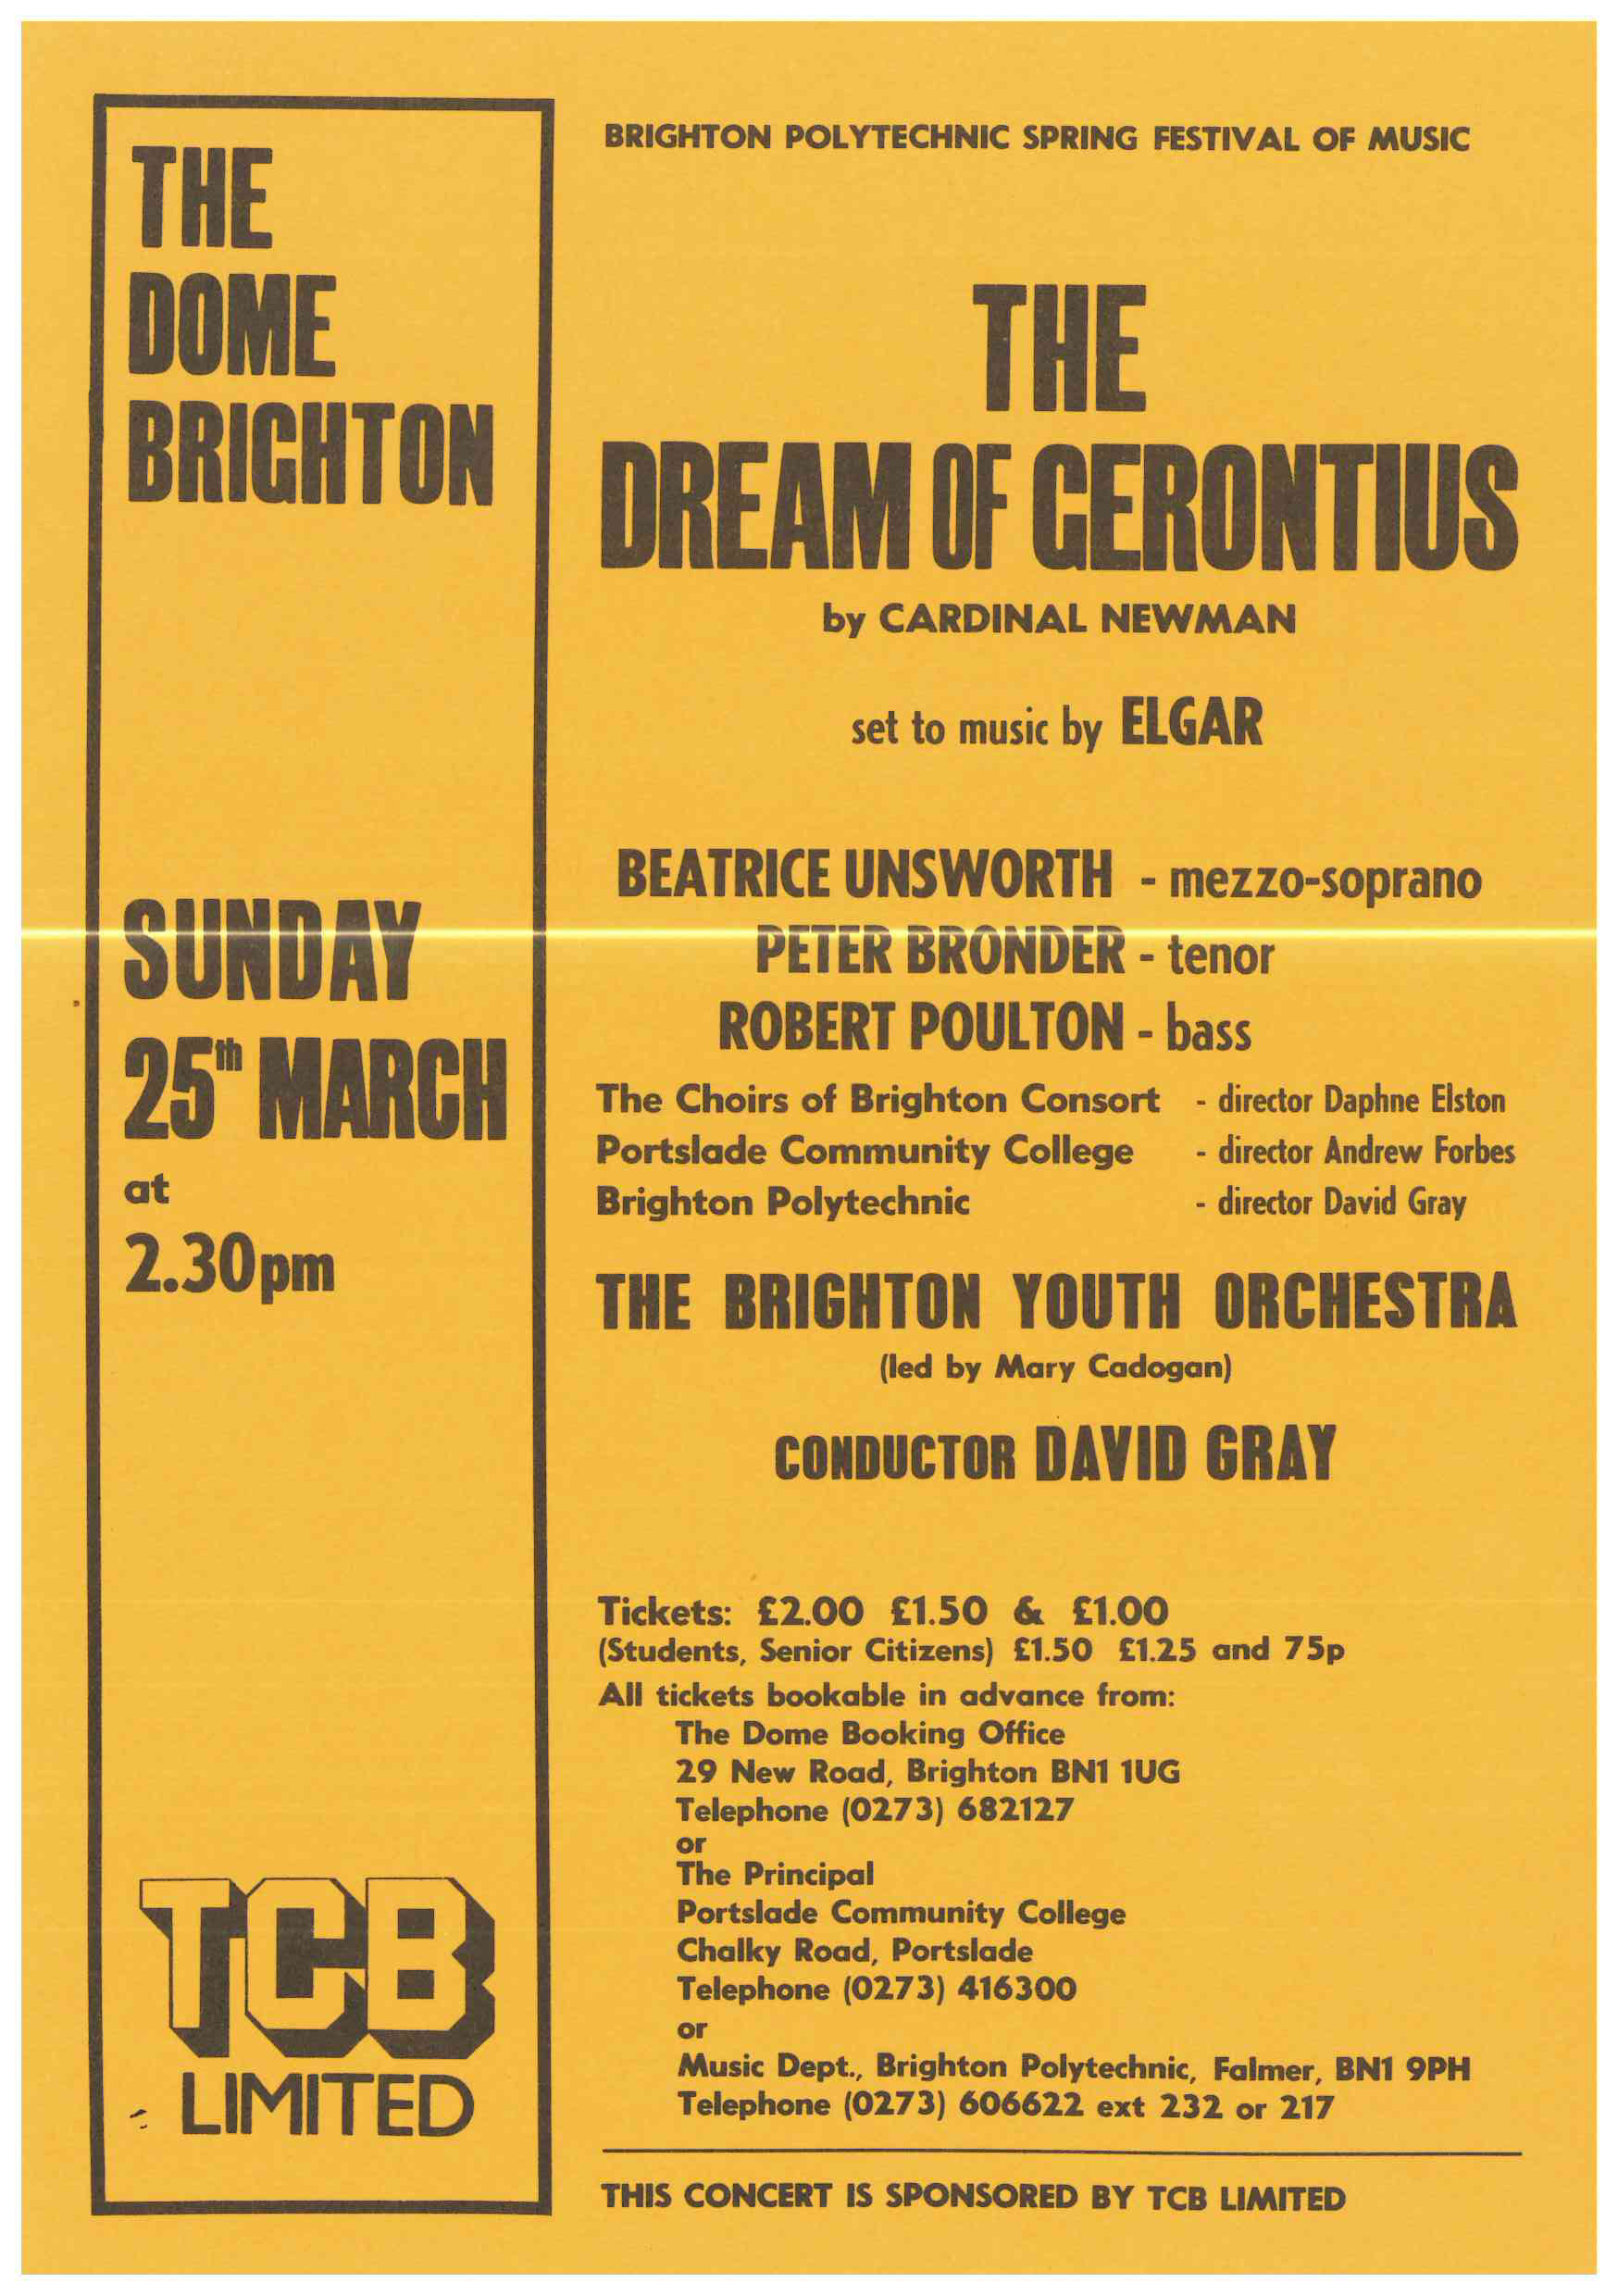 10013-Dream of Gerontius, Sunday 25th March.jpg